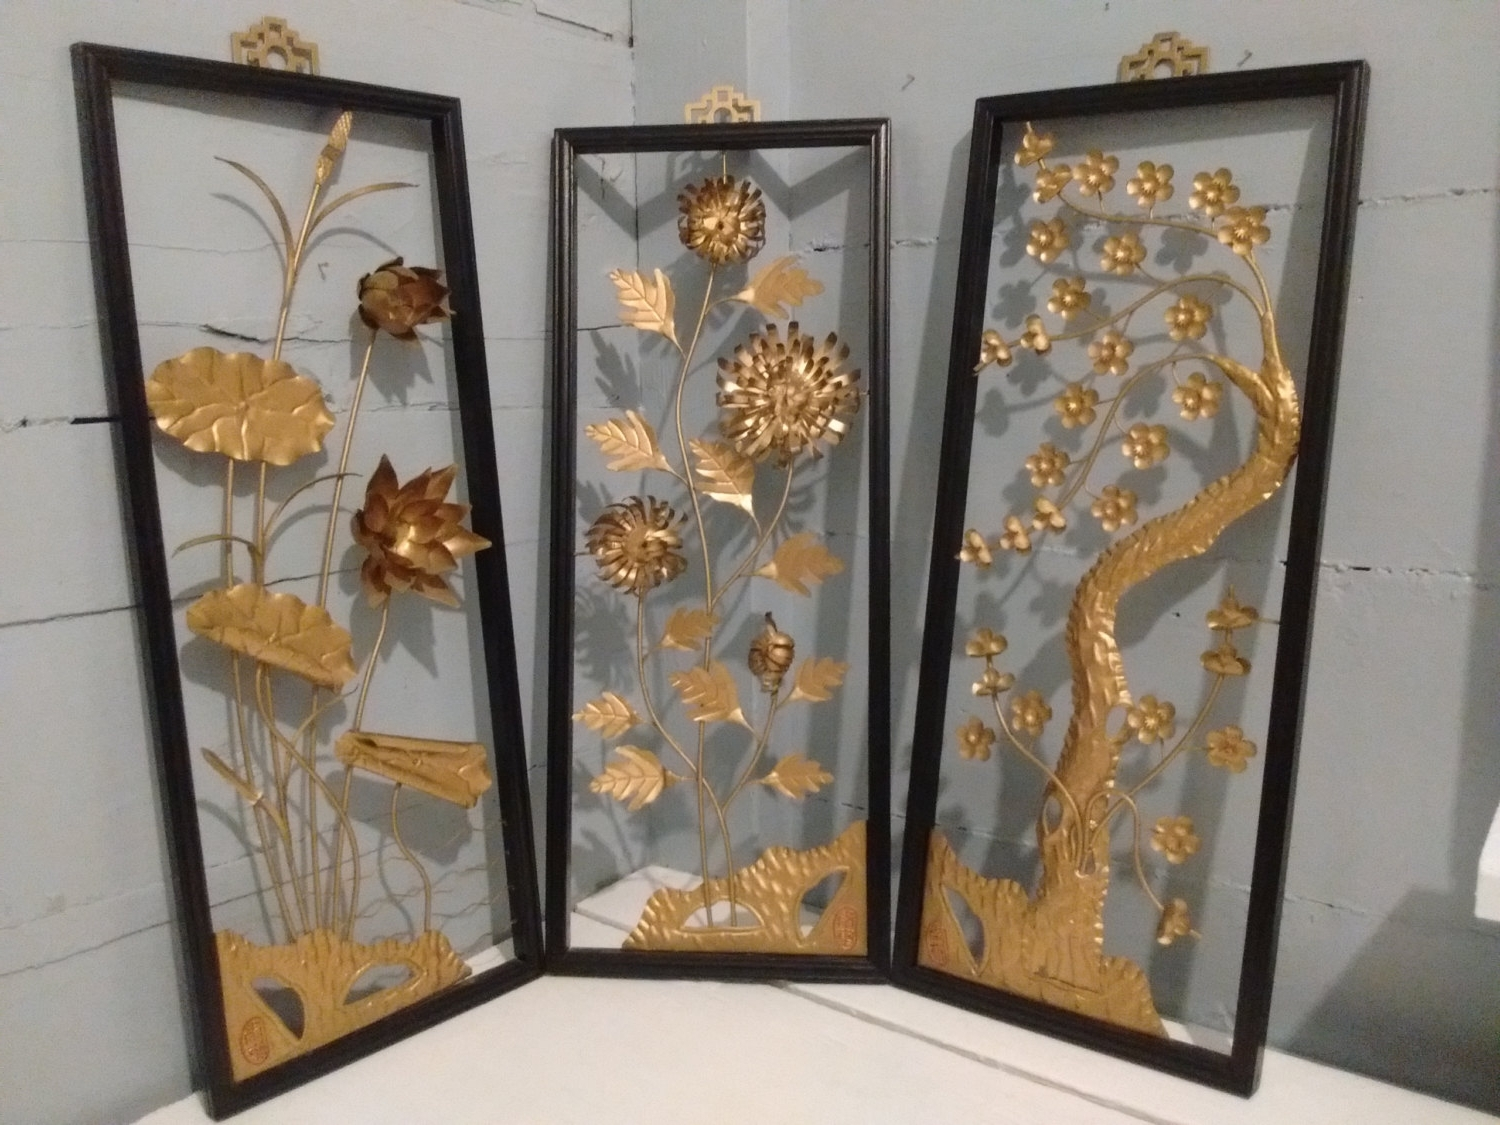 Art, Floral, Framed, 3D, Wall Art, Metal, Sculpture, Set Of 3, Mid With Regard To Current Asian Metal Wall Art (View 2 of 15)